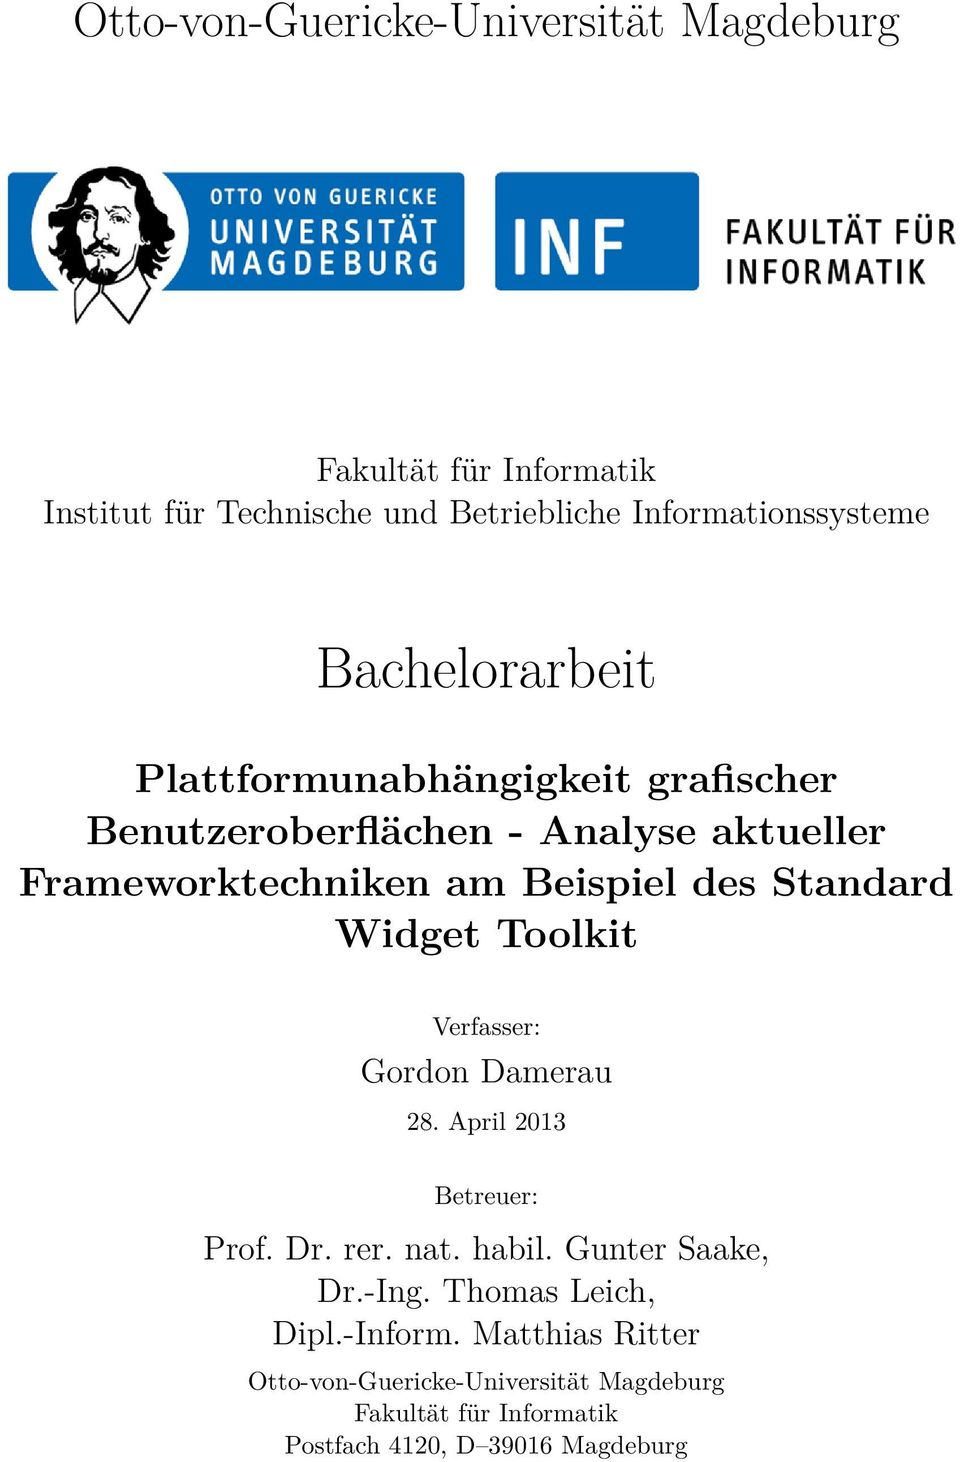 Standard Widget Toolkit Verfasser: Gordon Damerau 28. April 2013 Betreuer: Prof. Dr. rer. nat. habil. Gunter Saake, Dr.-Ing.